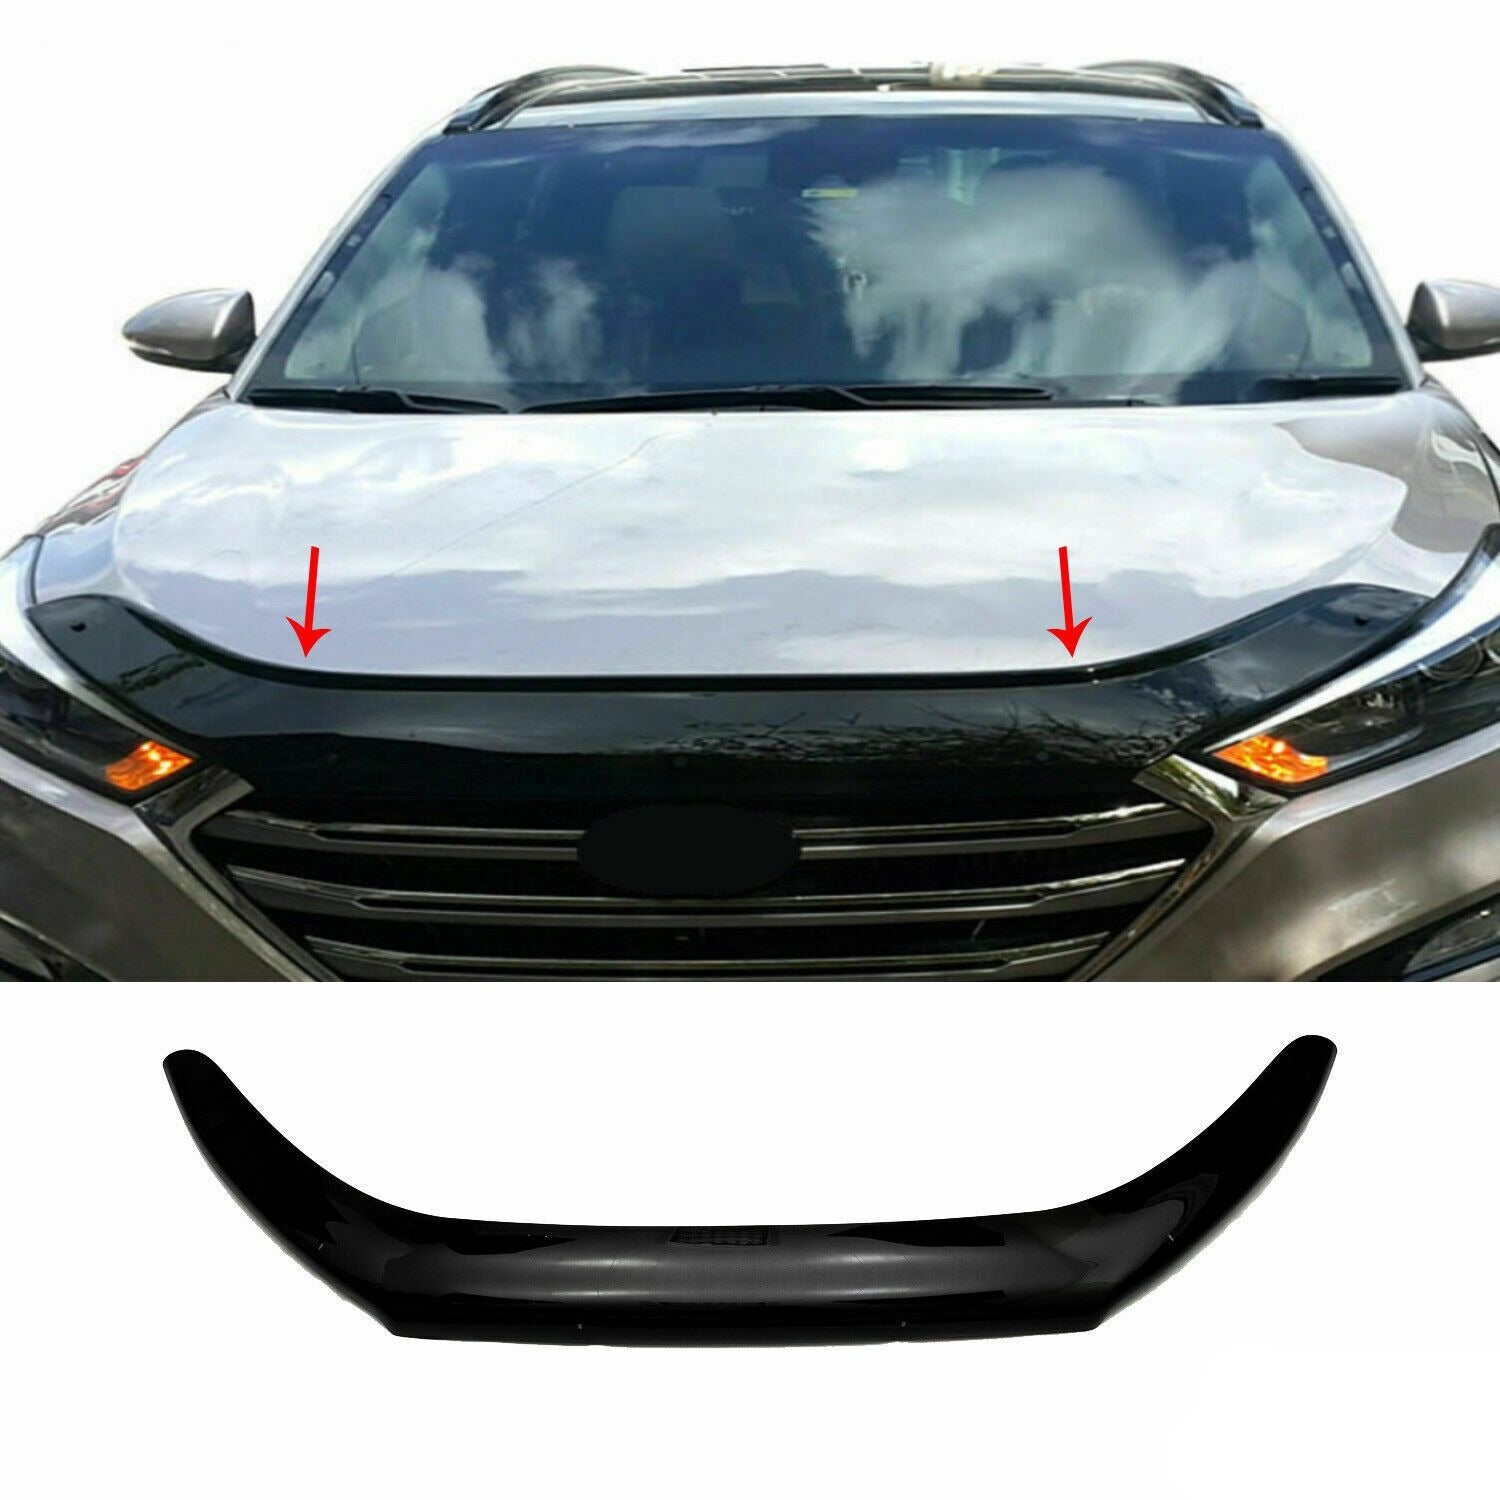 Front Bug Shield Hood Deflector Guard for Hyundai Tucson 2016-2020